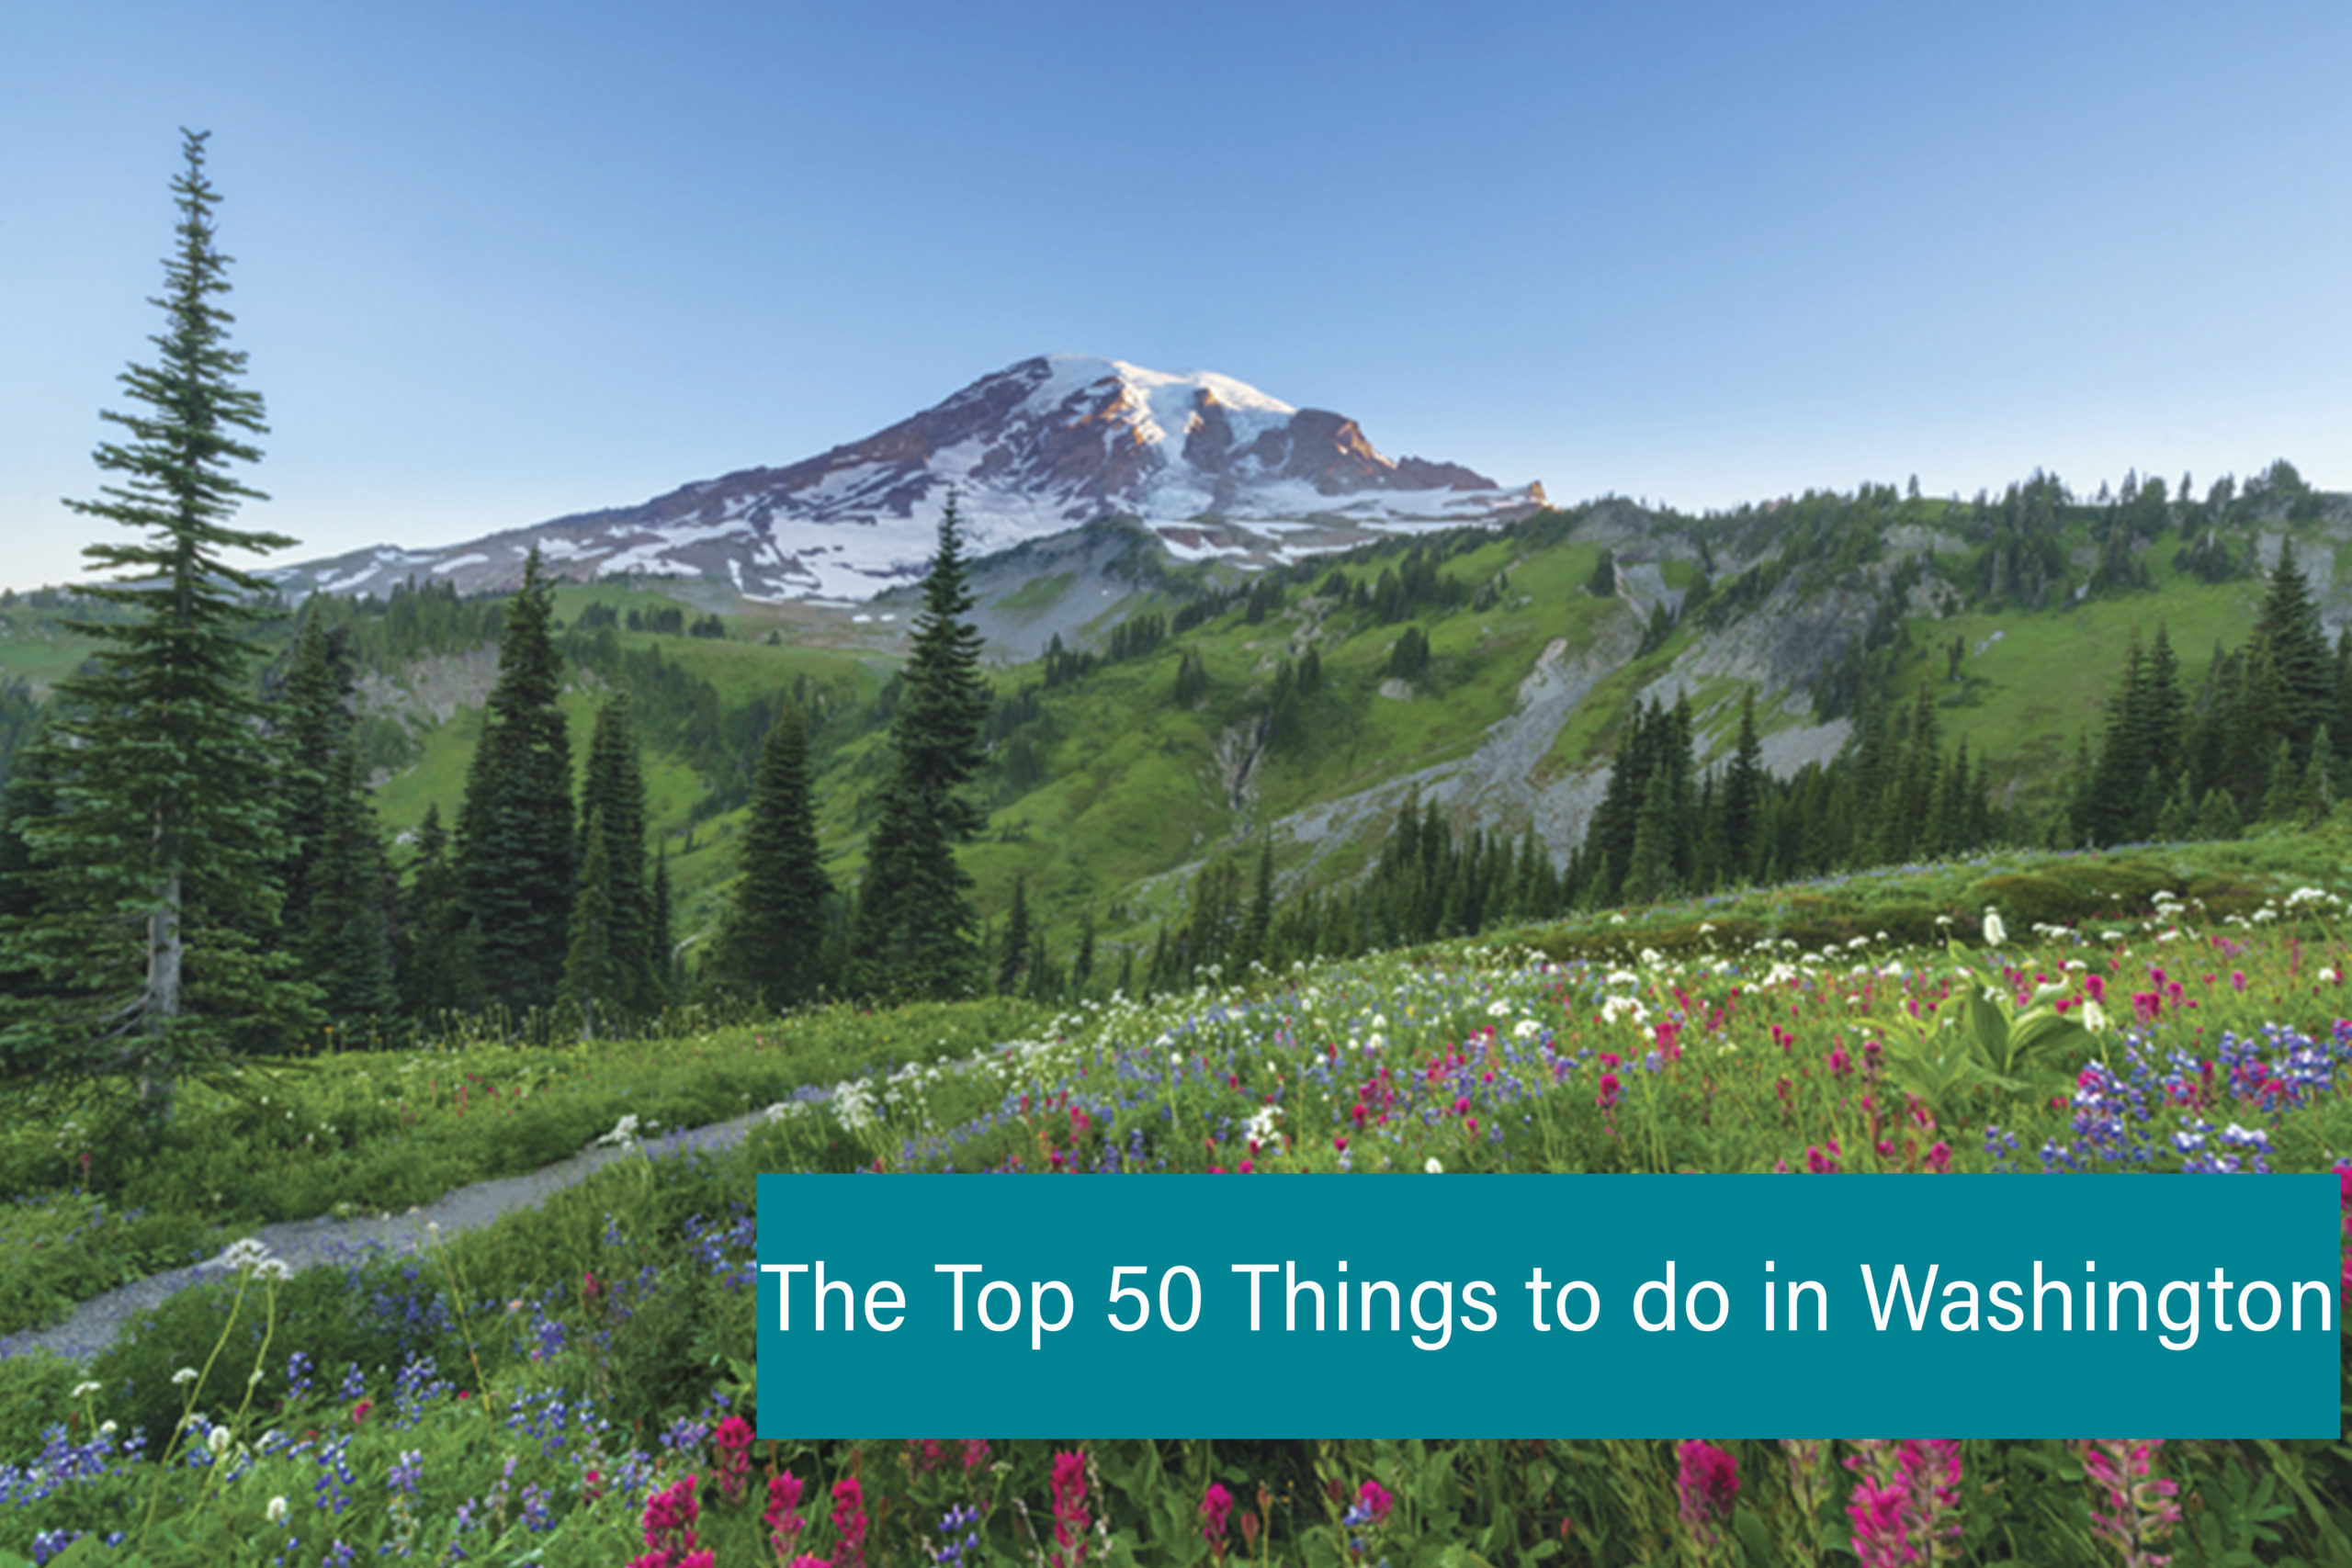 The top 50 things to do in Washington State